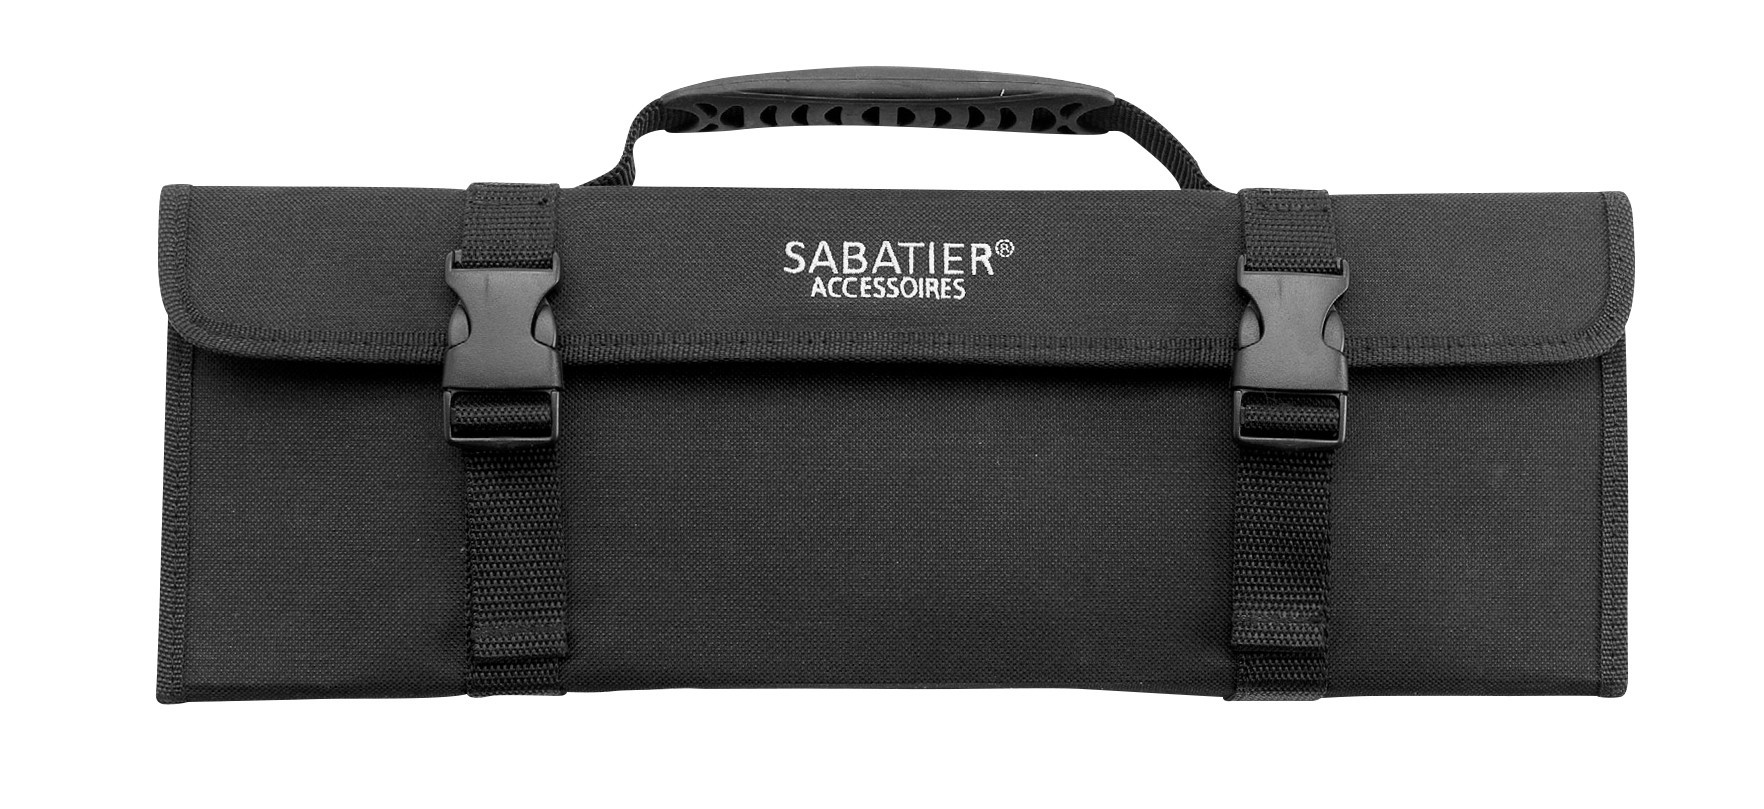 sabatier knife bag with 5 kitchen knives 100 french. Black Bedroom Furniture Sets. Home Design Ideas